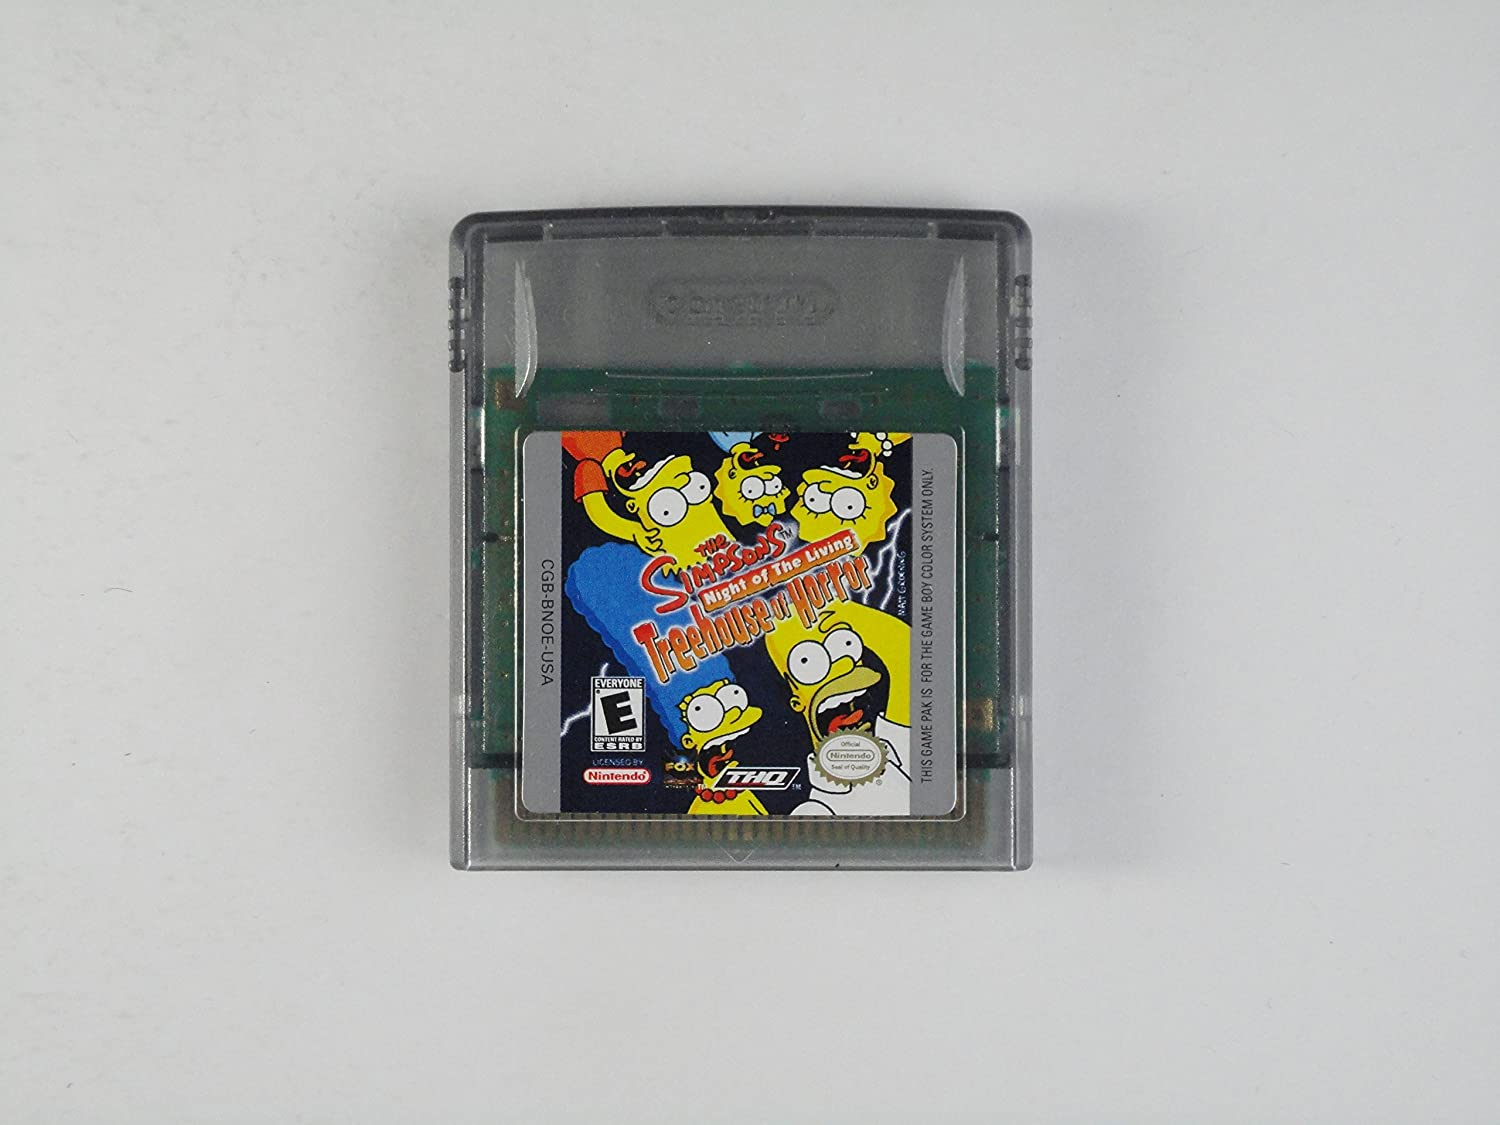 Gameplay color access code - Amazon Com The Simpsons Night Of The Living Treehouse Of Horror Nintendo Game Boy Color Video Games